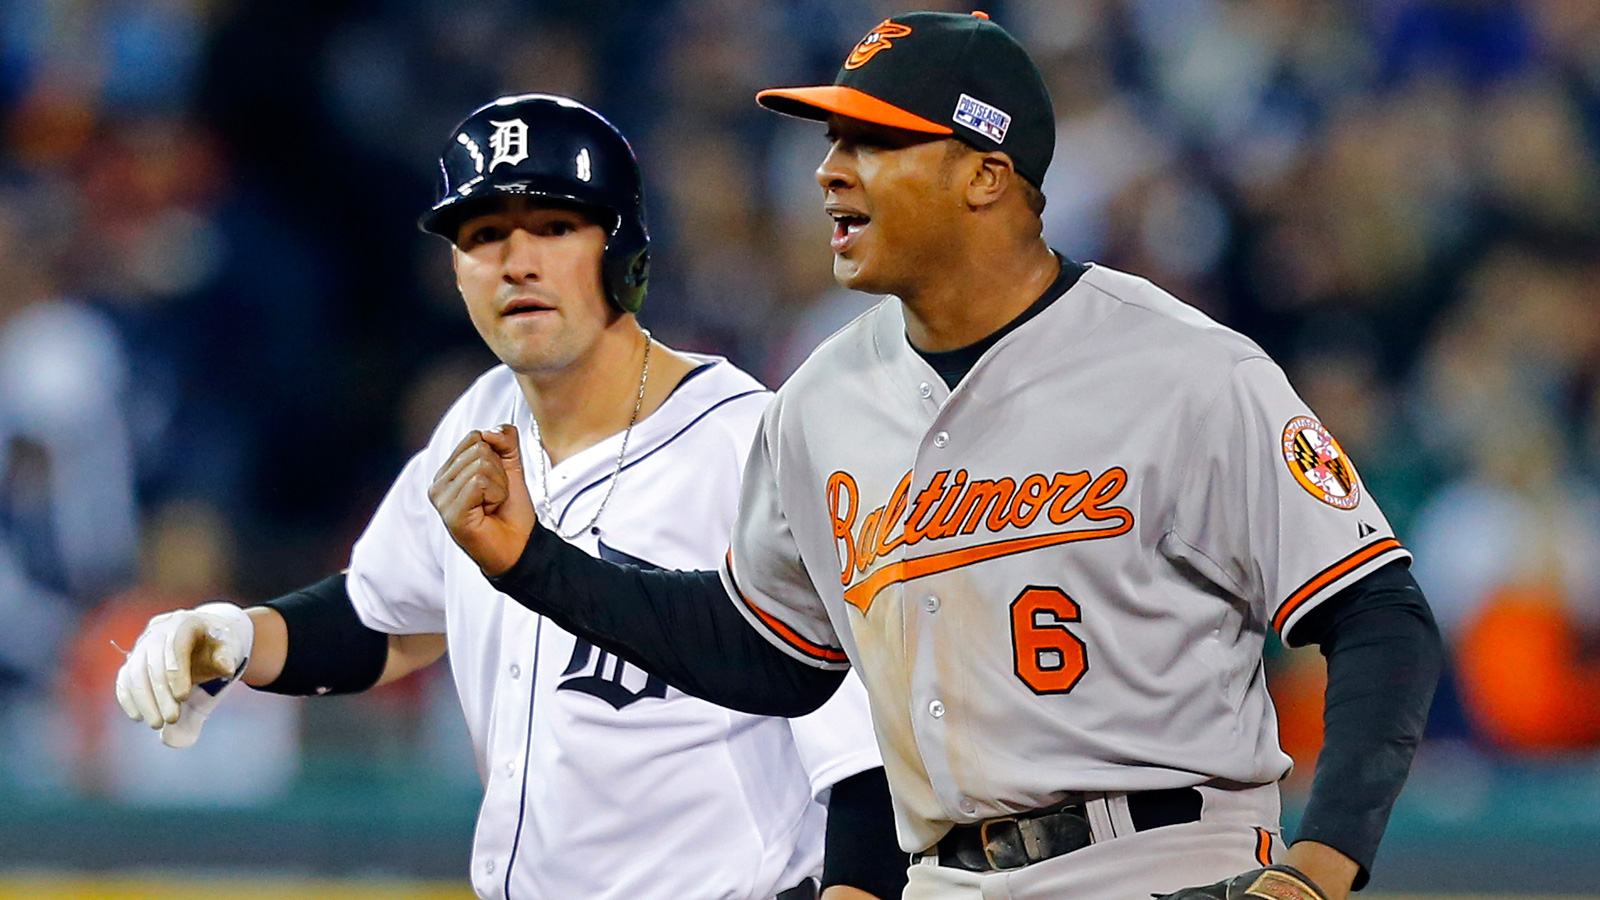 Tigers, Orioles face off in first meeting since AL division series